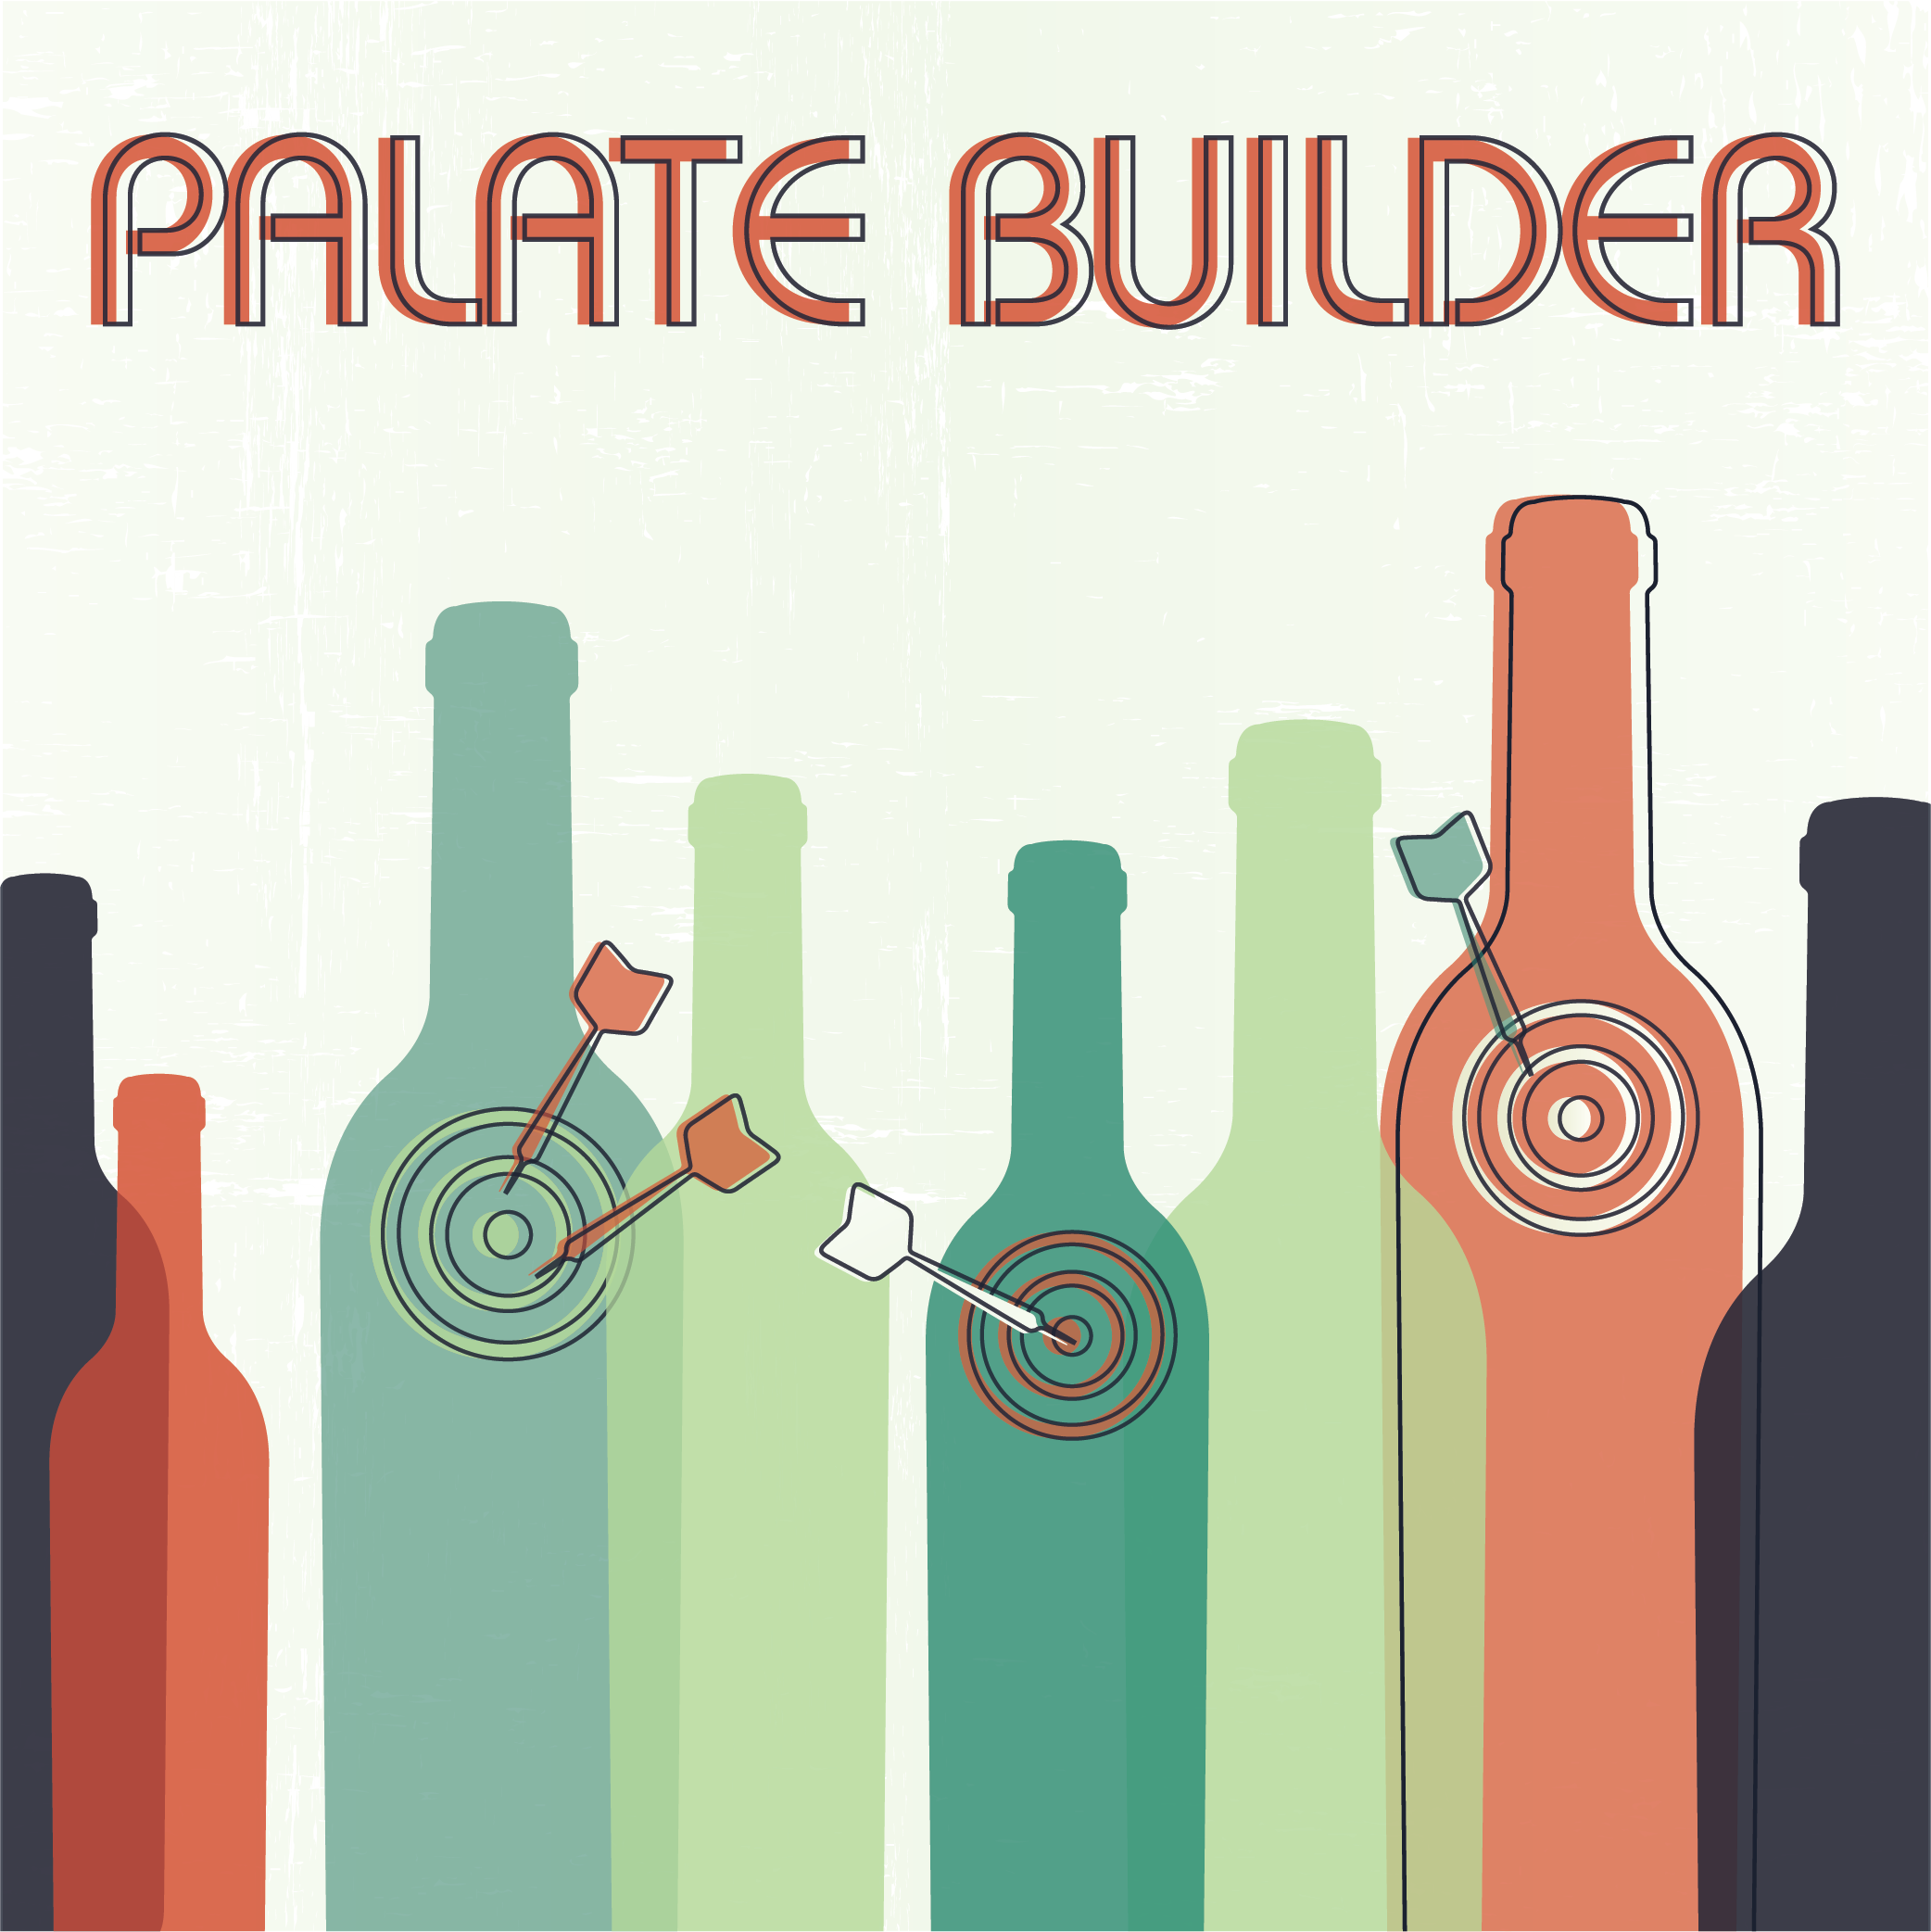 Palate Builder Downtown Los Angeles September 15, 2019 3:30 PM - 5:30 PM